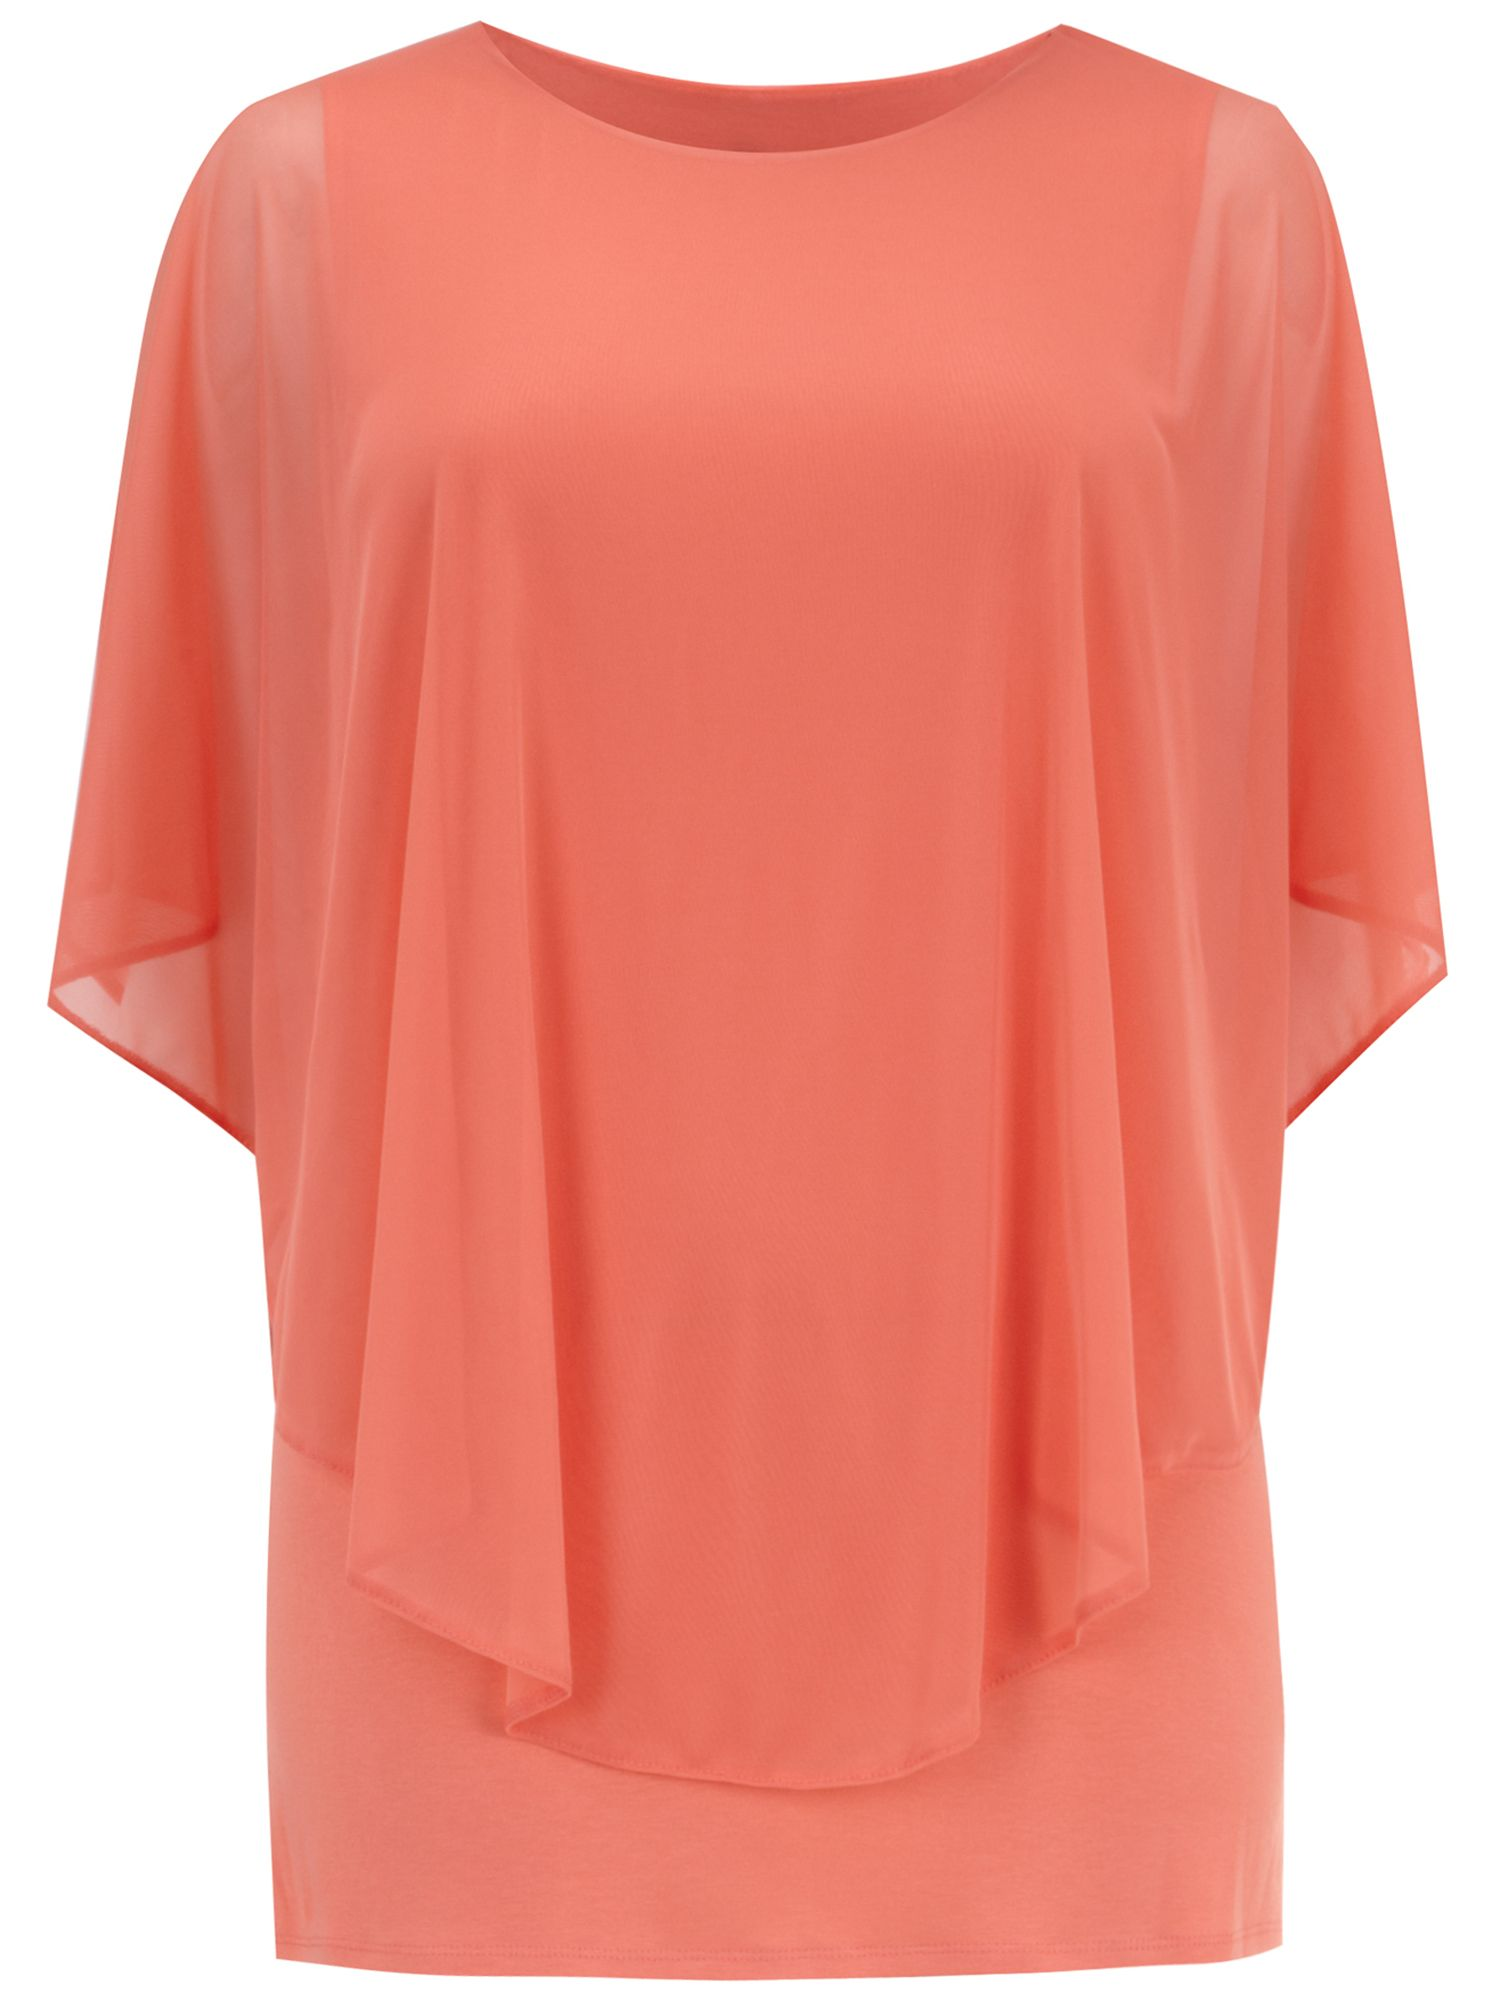 Orange mesh overlay top